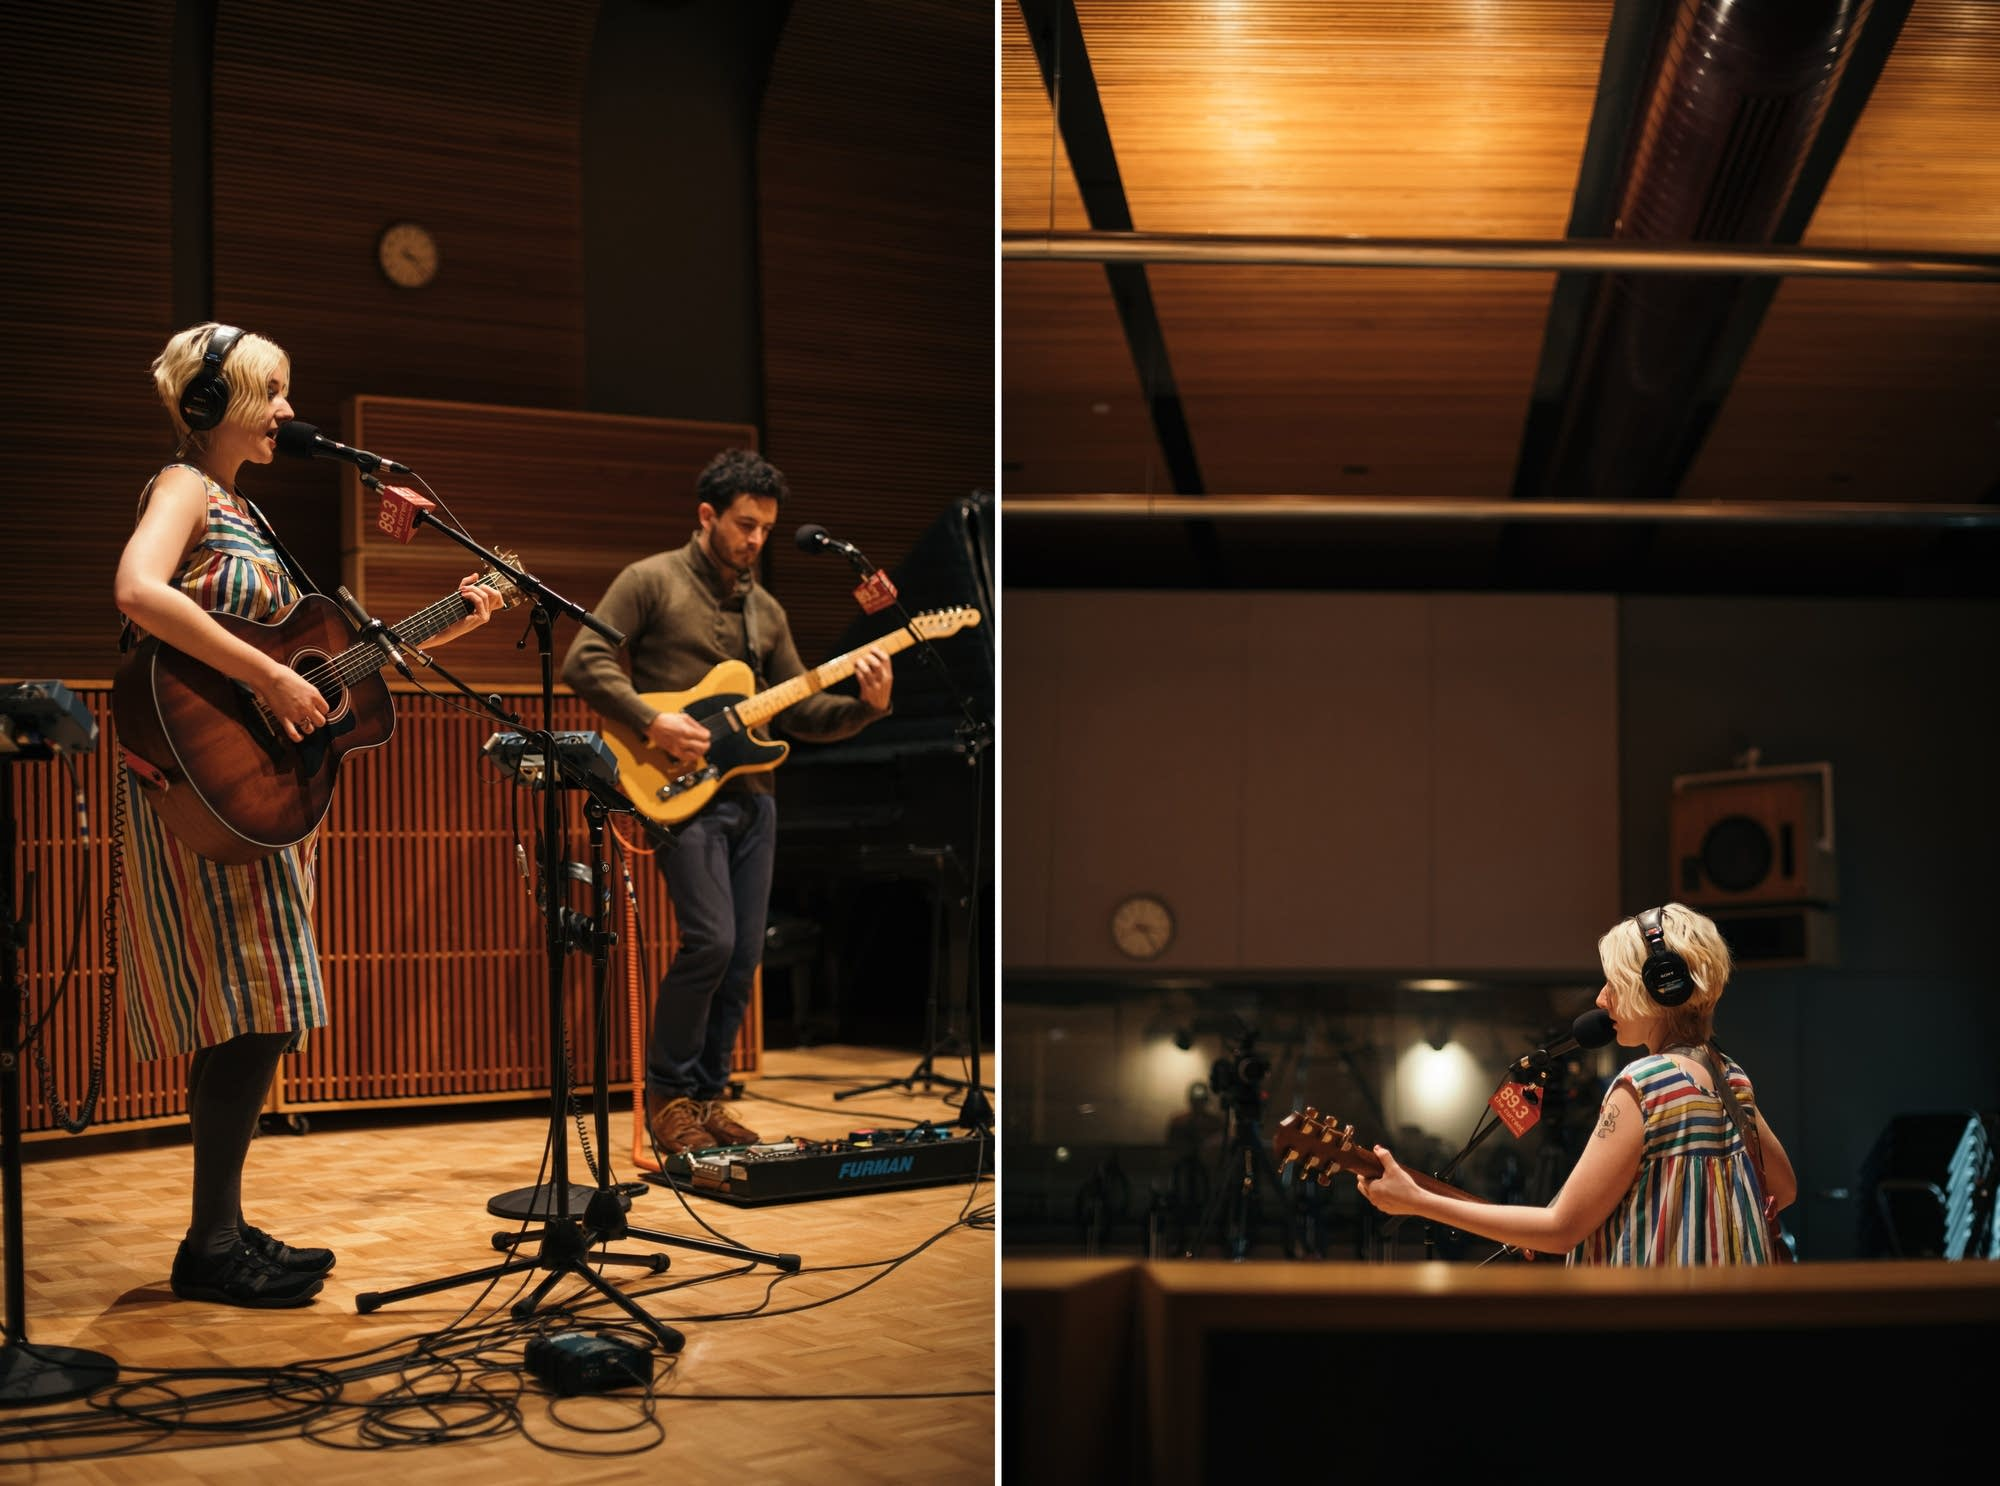 Jessica Lea Mayfield performs in The Current studio